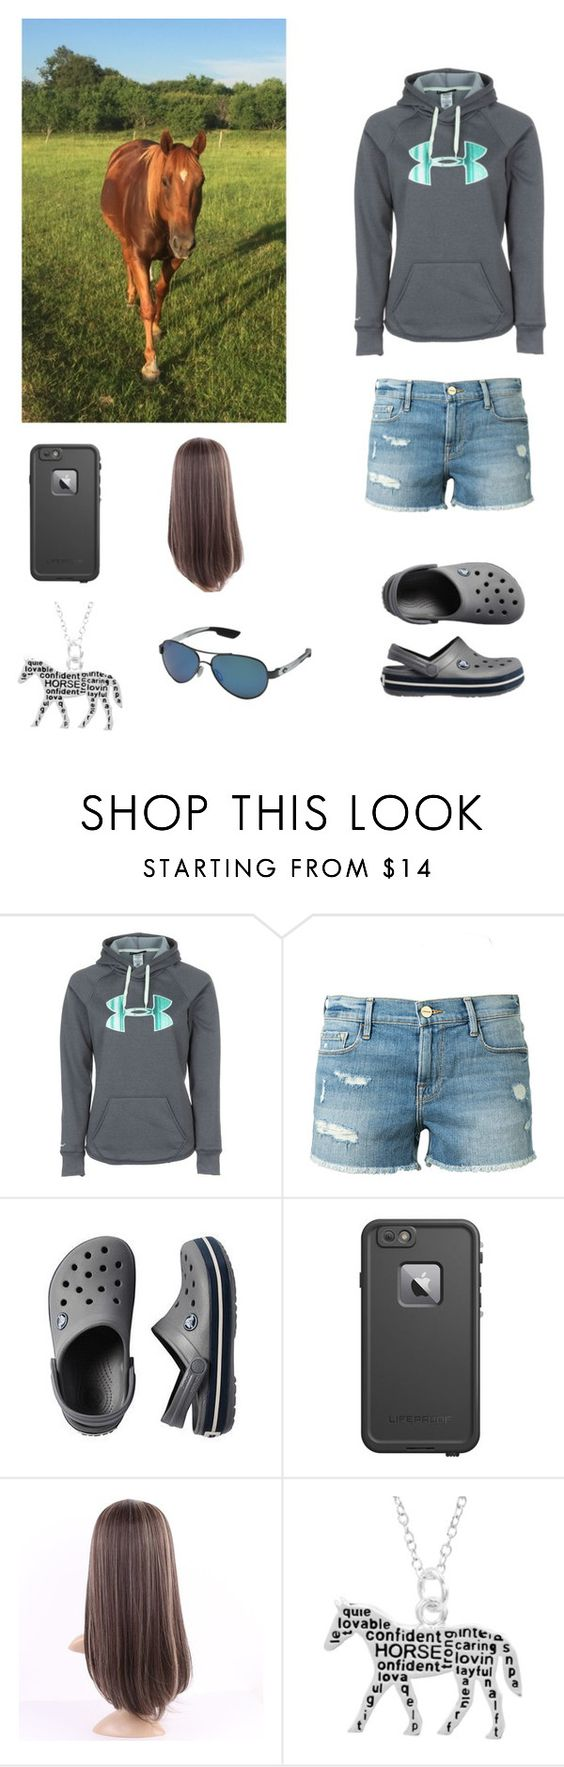 """I love my horse"" by jazzywiggles ❤ liked on Polyvore featuring Under Armour, Frame Denim, LifeProof and Costa"